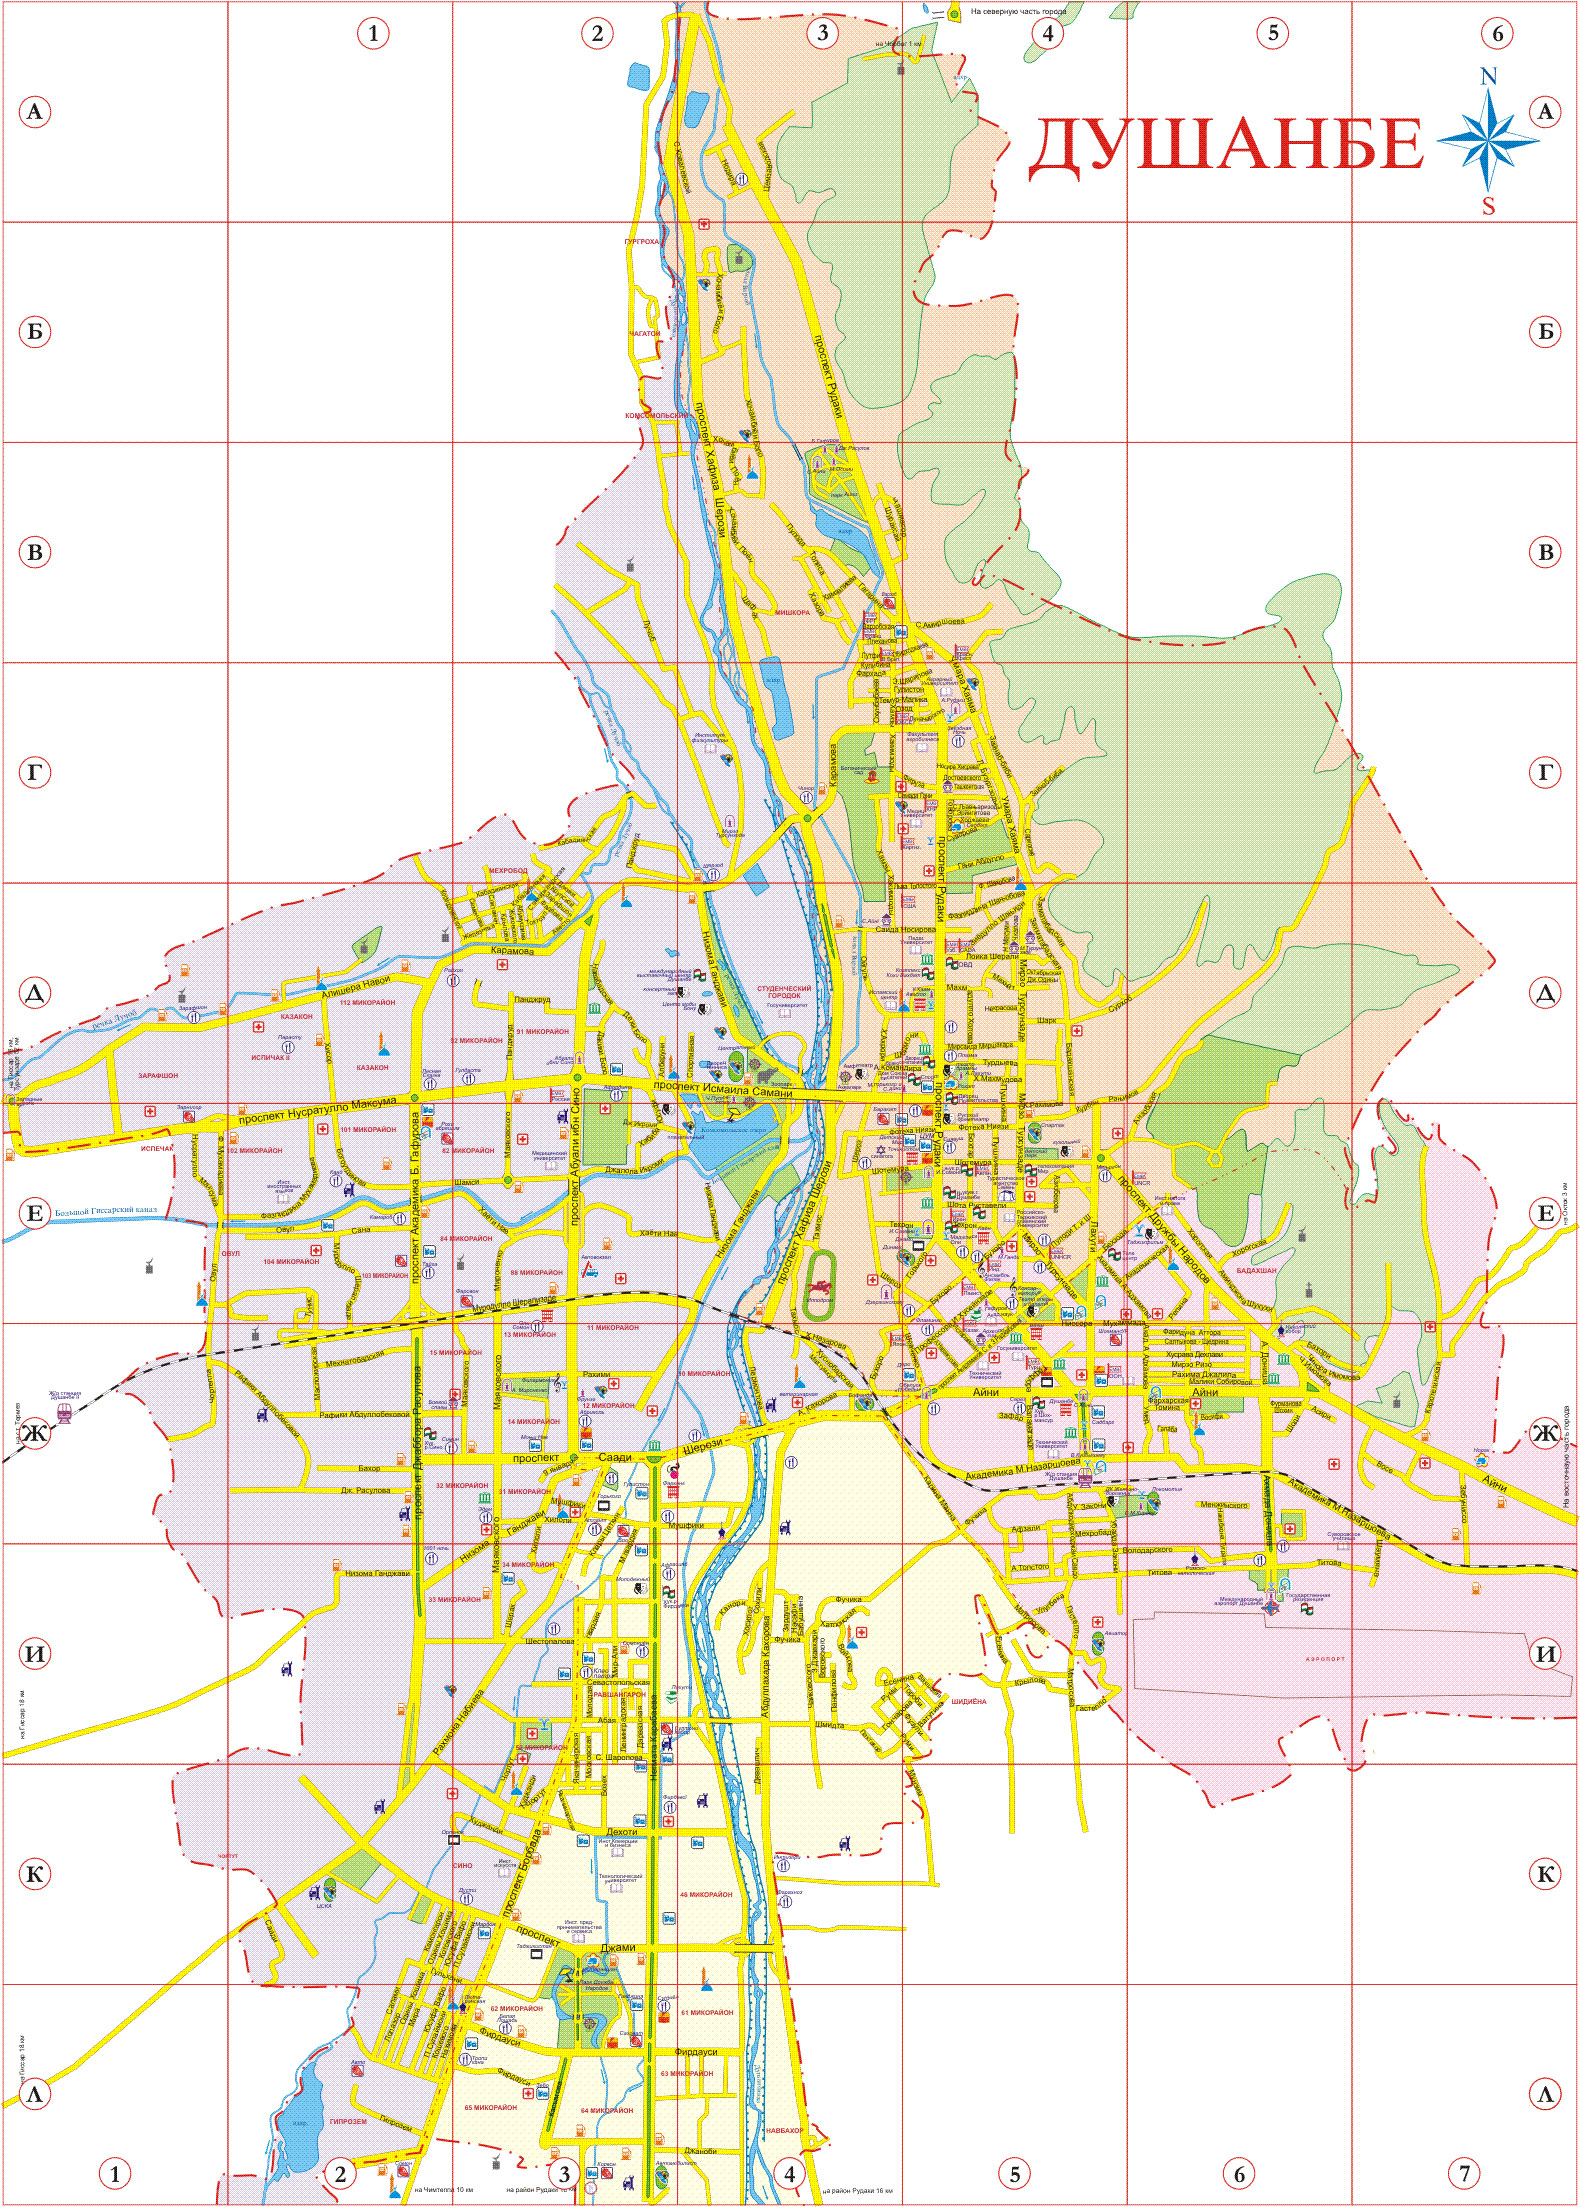 Map Of Dushanbe City In Tajikistan Capital - Dushanbe map